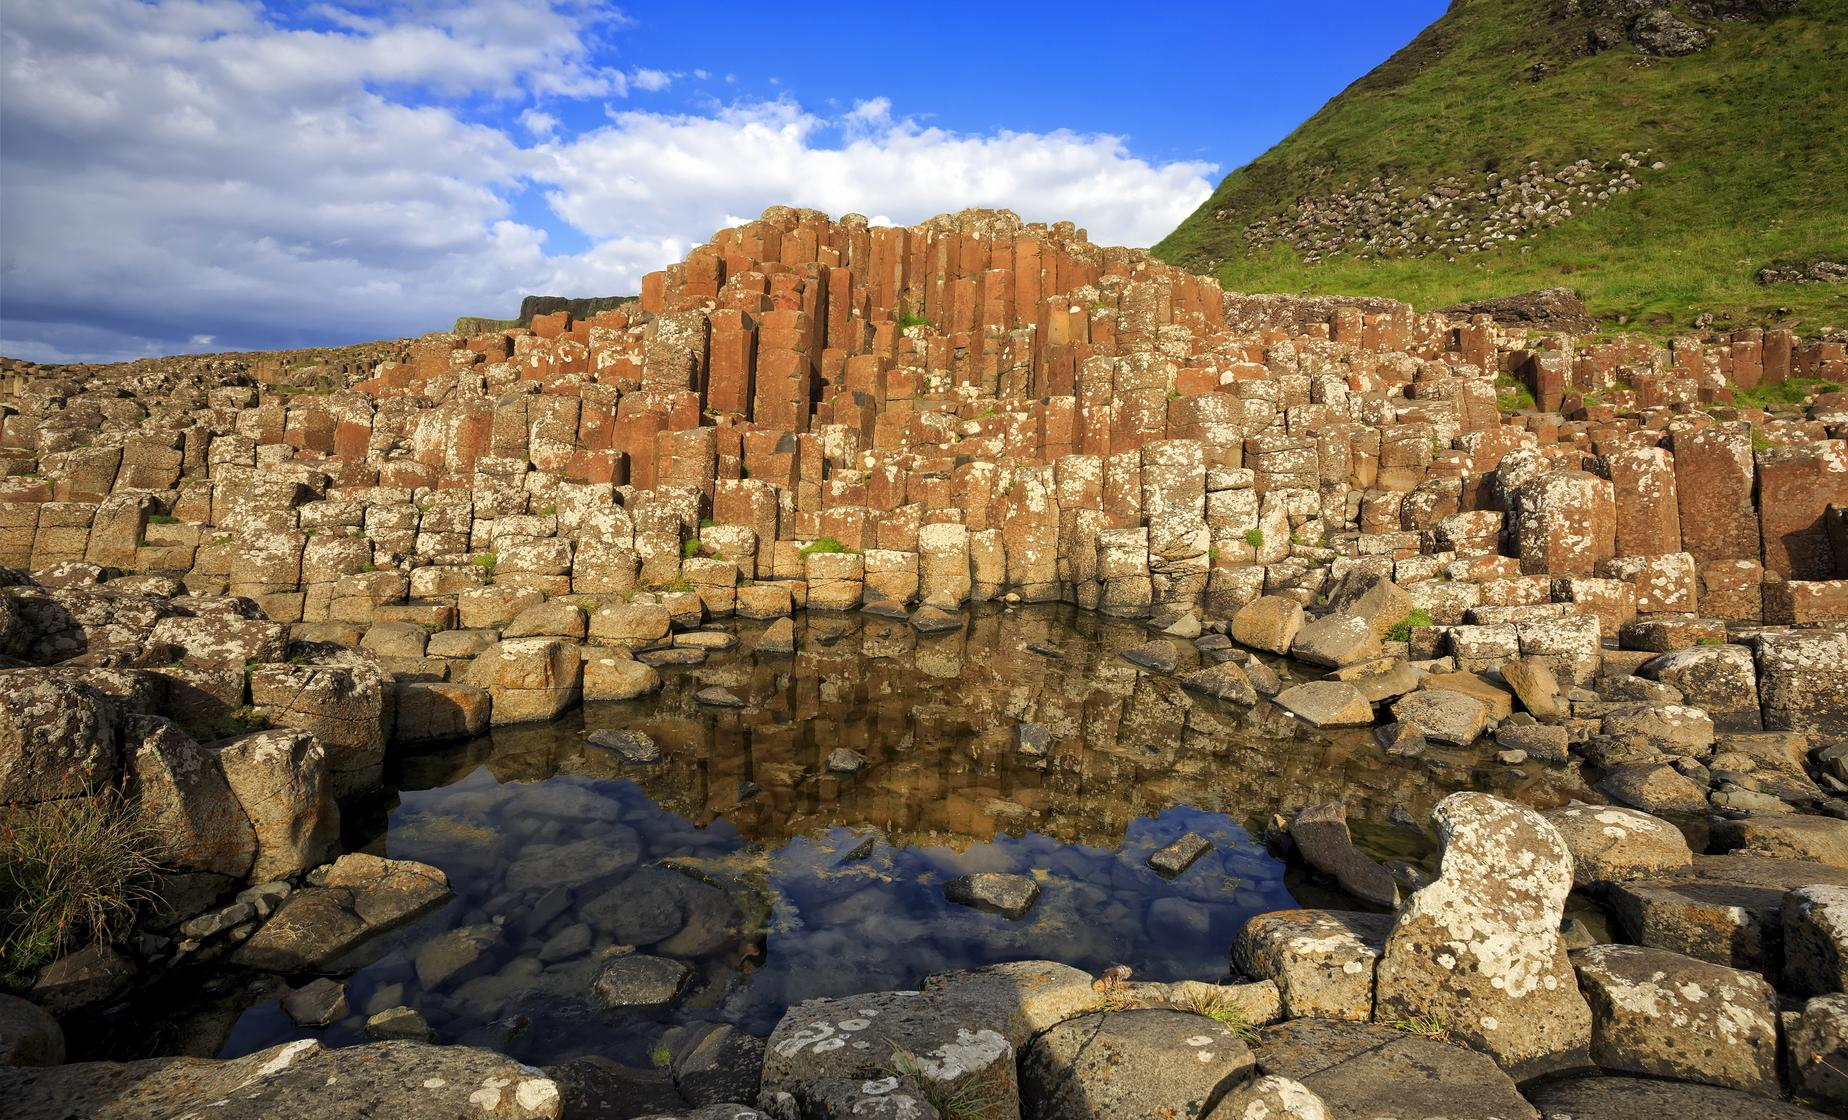 A Giants Causeway Adventure